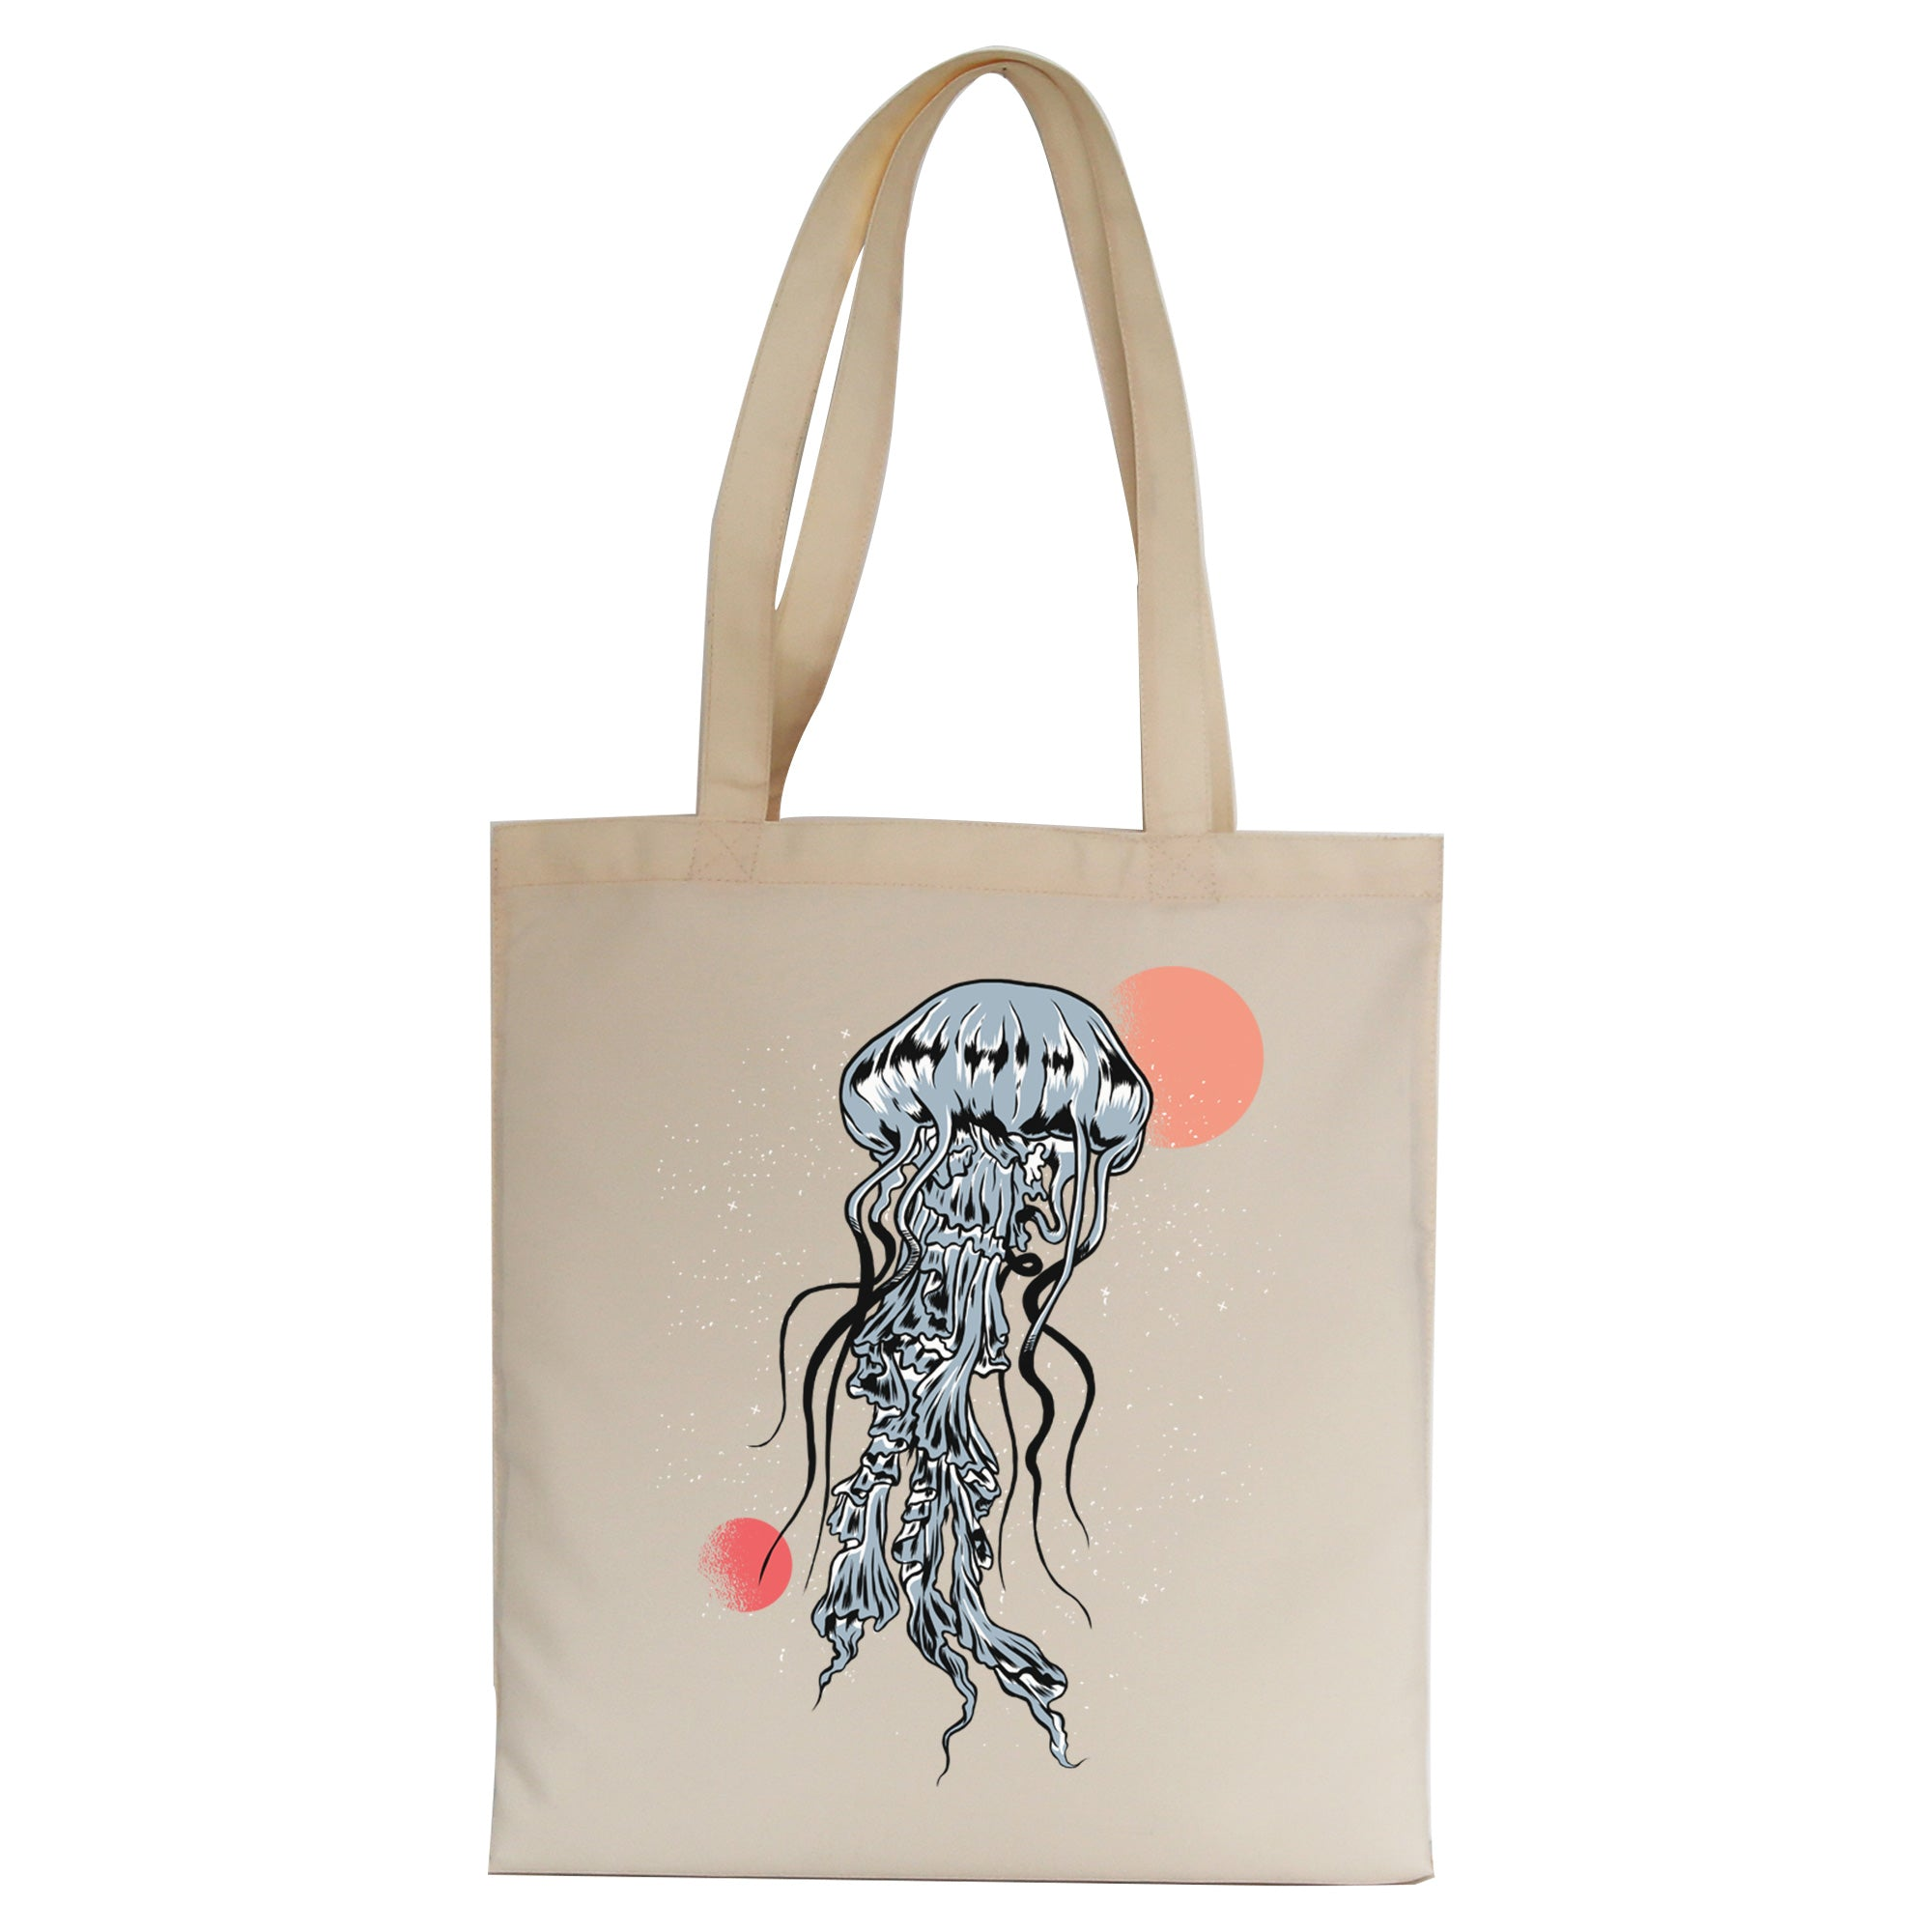 Space Jellyfish tote bag